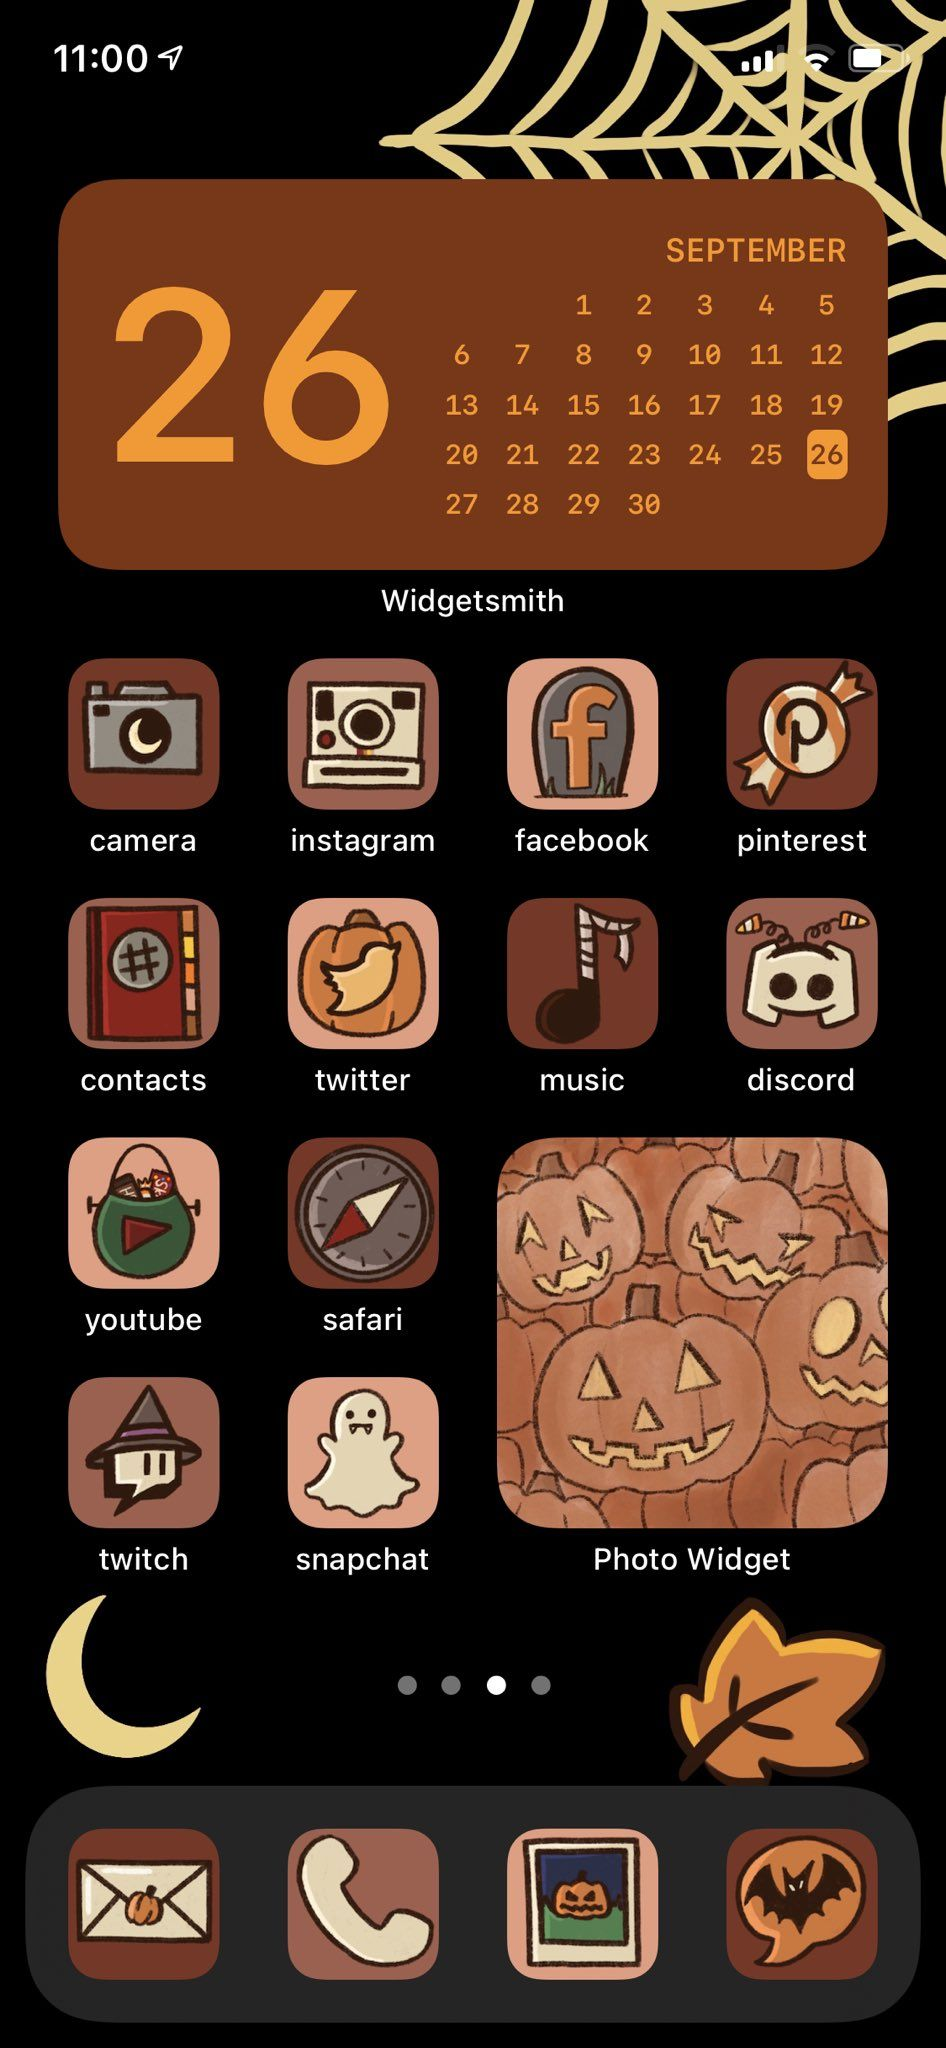 7 Ios 14 Fall Aesthetic Home Screen Ideas Homescreen Iphone Wallpaper App Iphone App Layout Pinterest has seen a surge in usage as users seek out design ideas and inspiration for ios 14 home screen customization options. ios 14 fall aesthetic home screen ideas